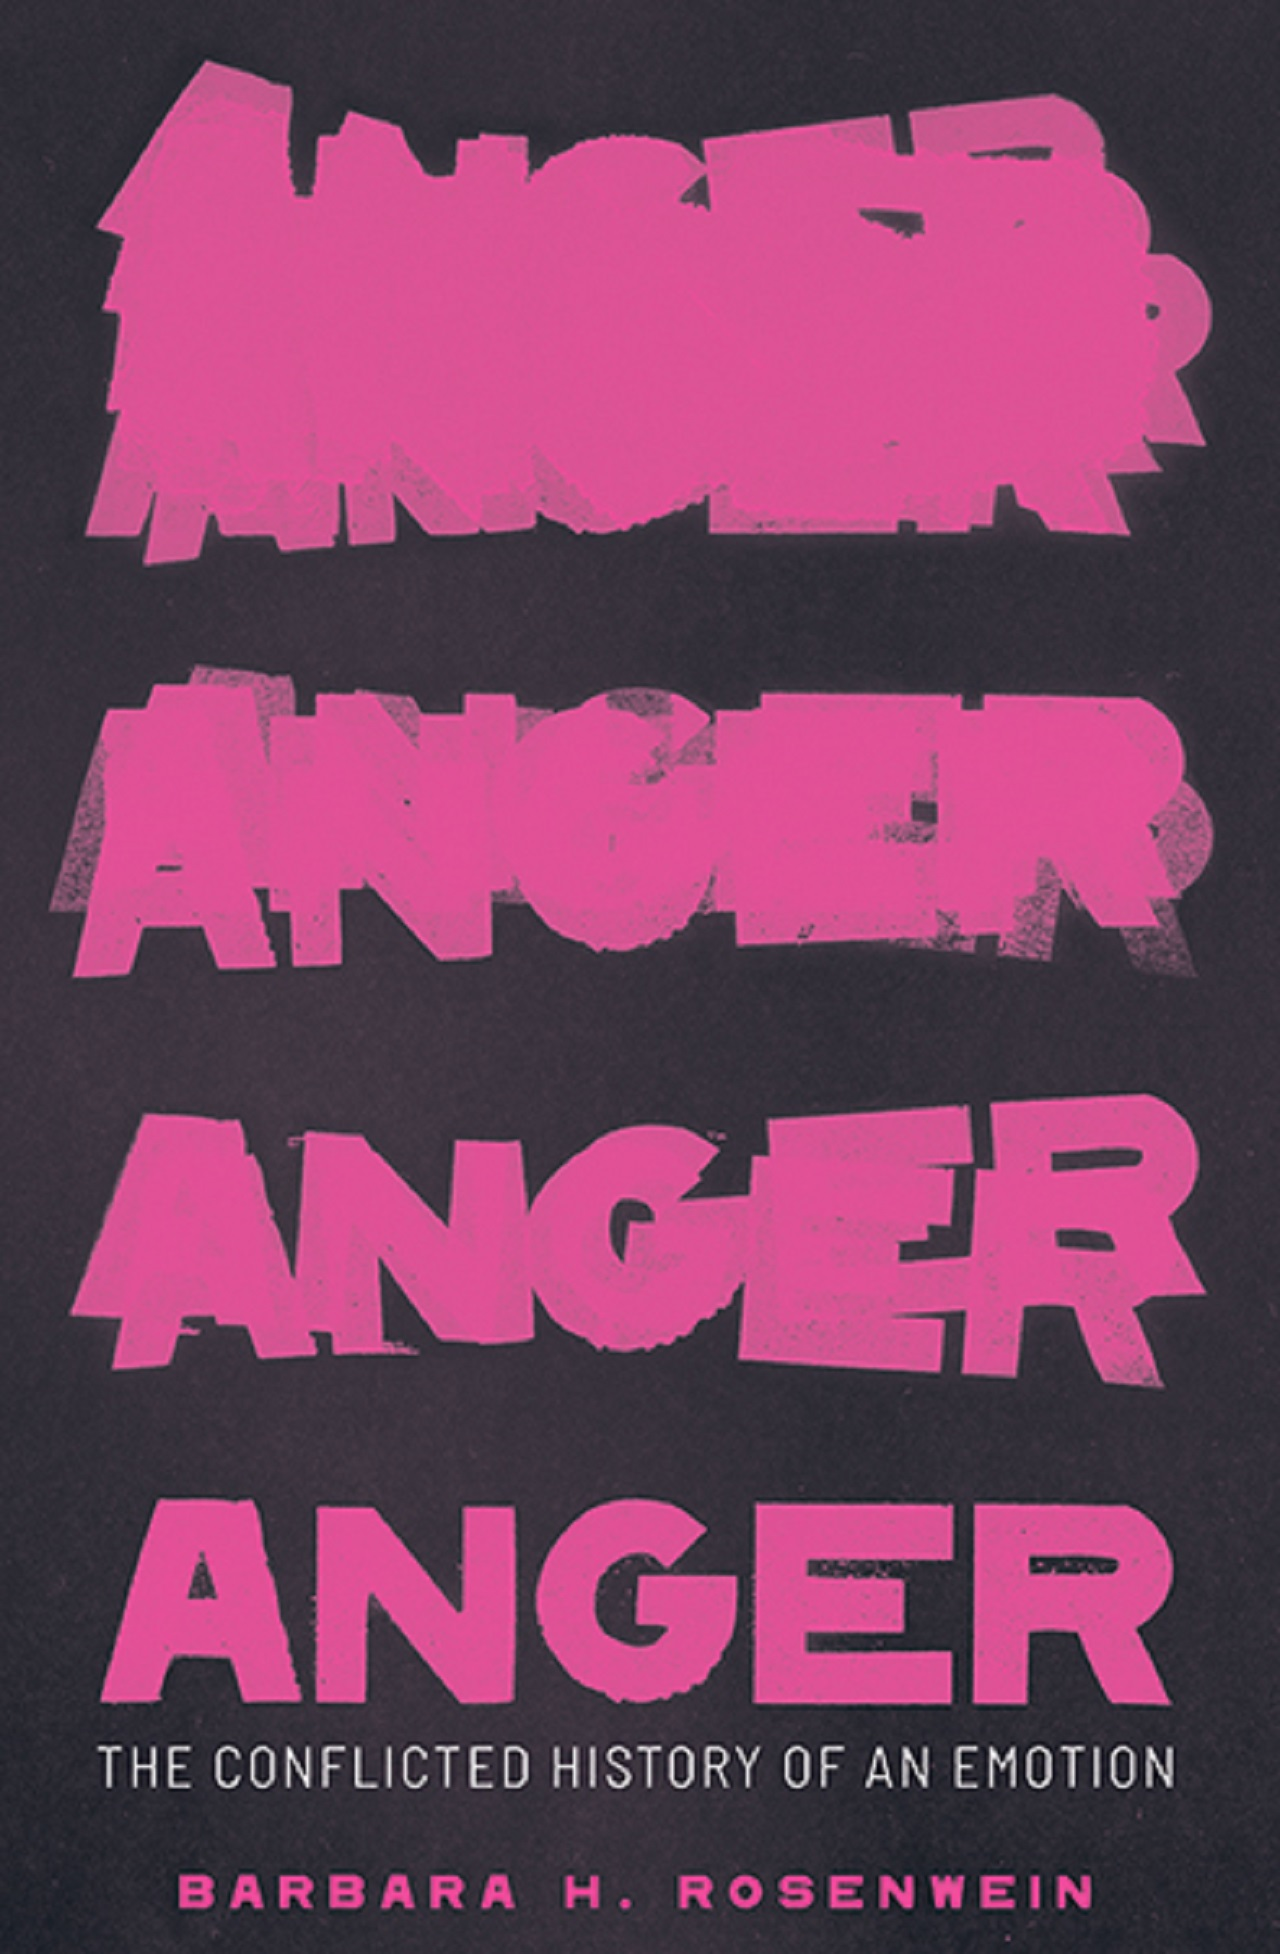 Anger: The Conflicted History of an Emotion (Yale University Press, 2020)